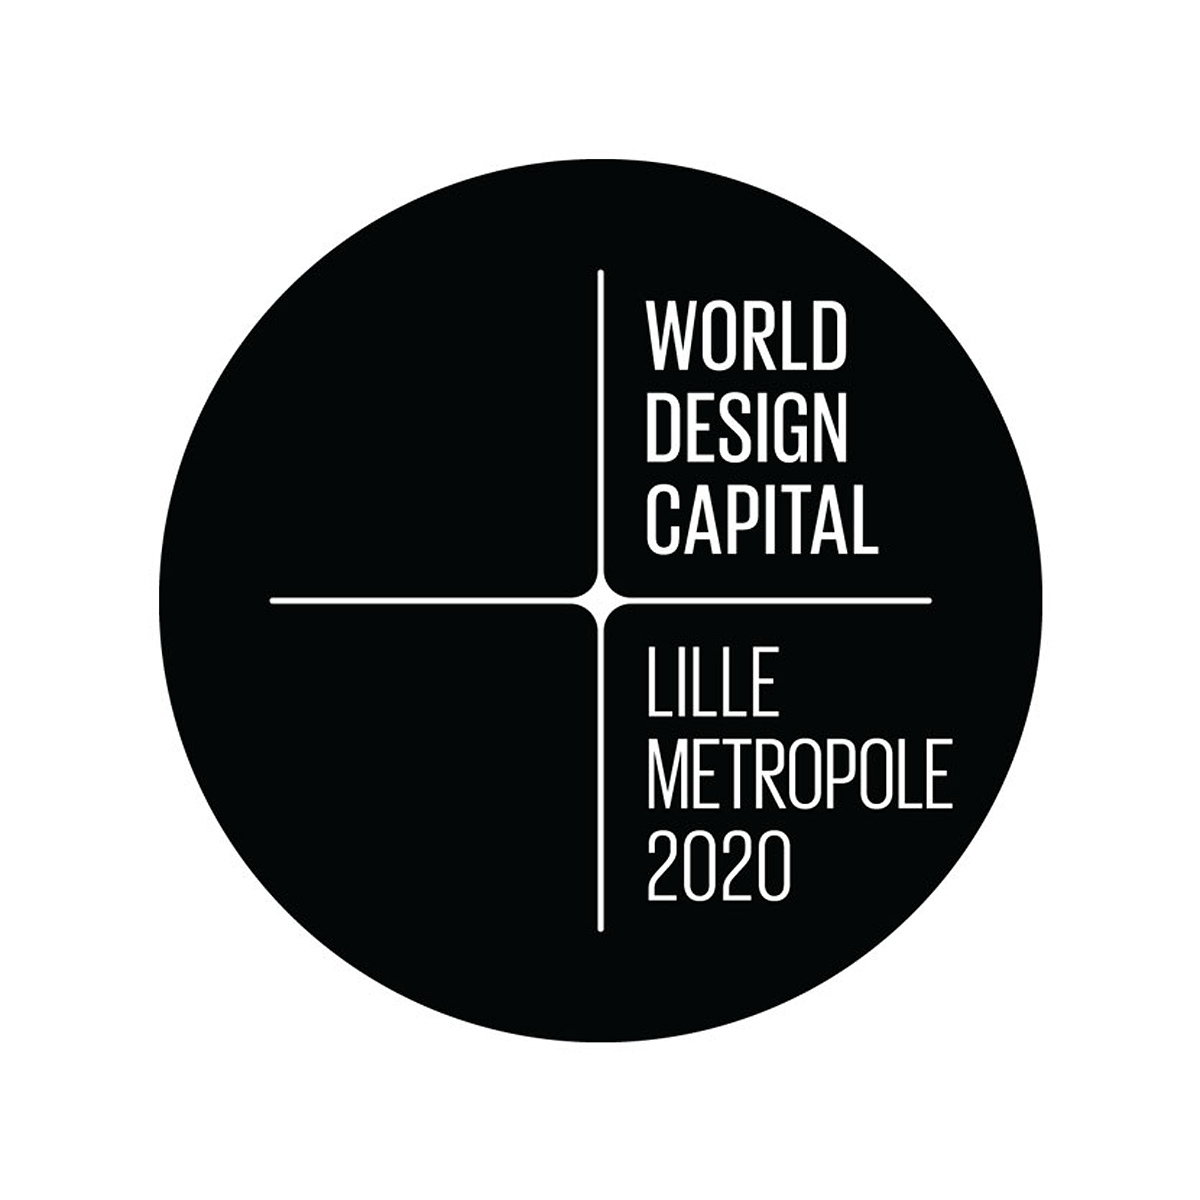 Lille Metropole Named World Design Capital 2020